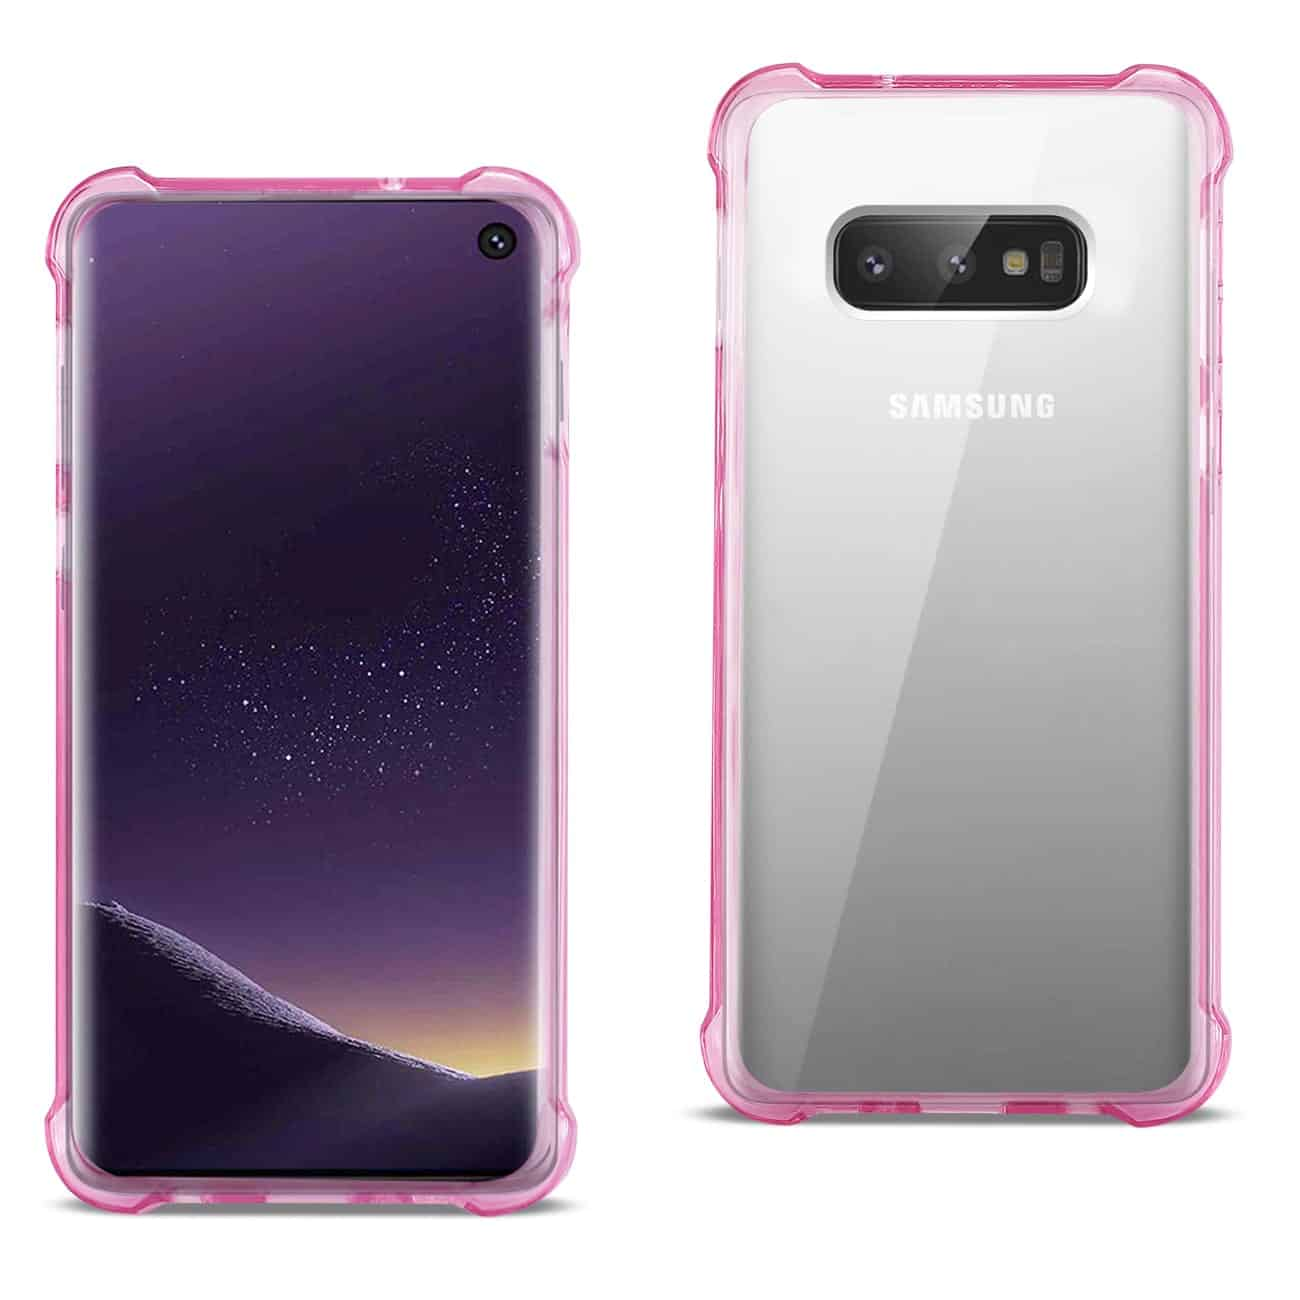 SAMSUNG GALAXY S10 Lite(S10e) Clear Bumper Case With Air Cushion Protection In Clear Hot Pink